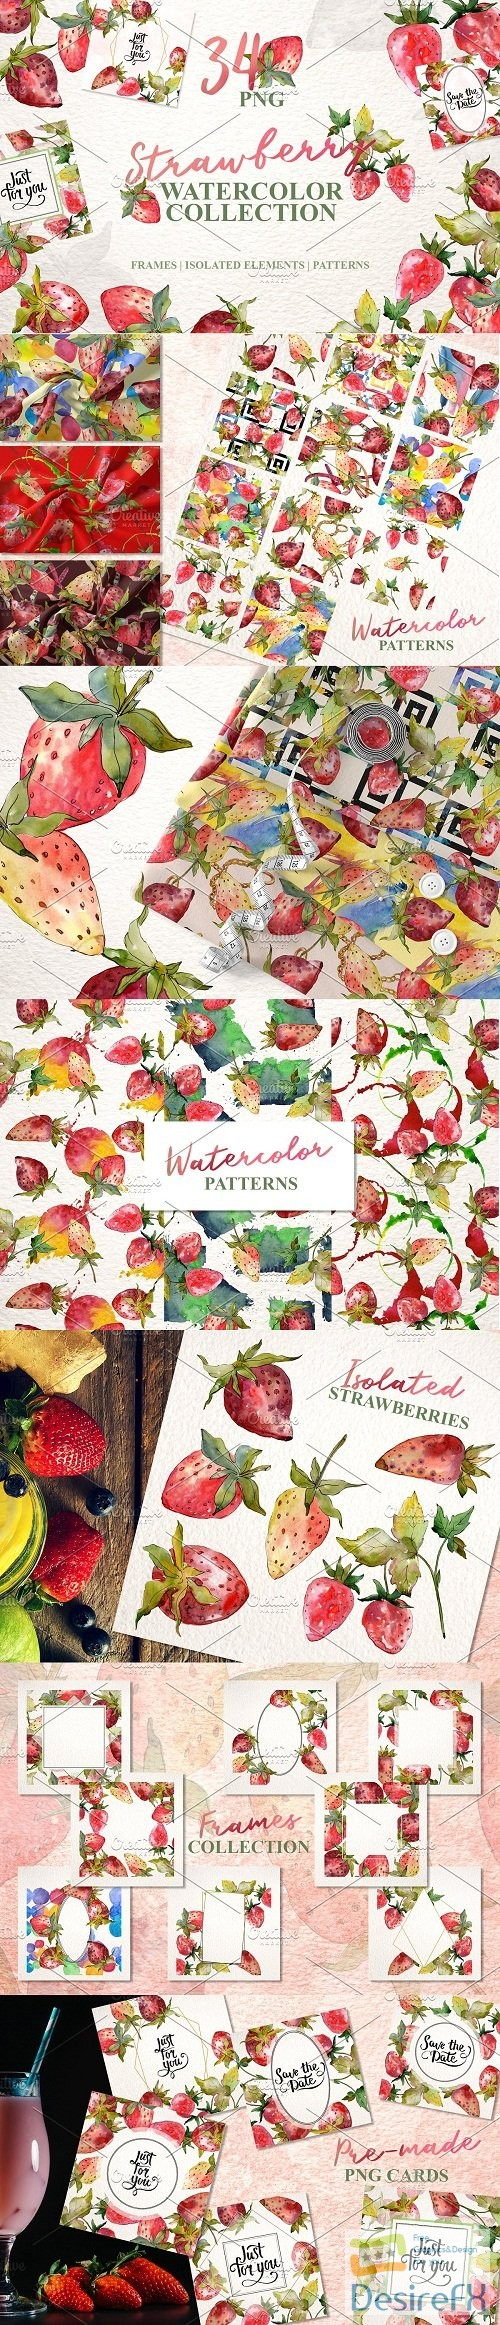 stock-images - Strawberry collection Watercolor png - 3593345